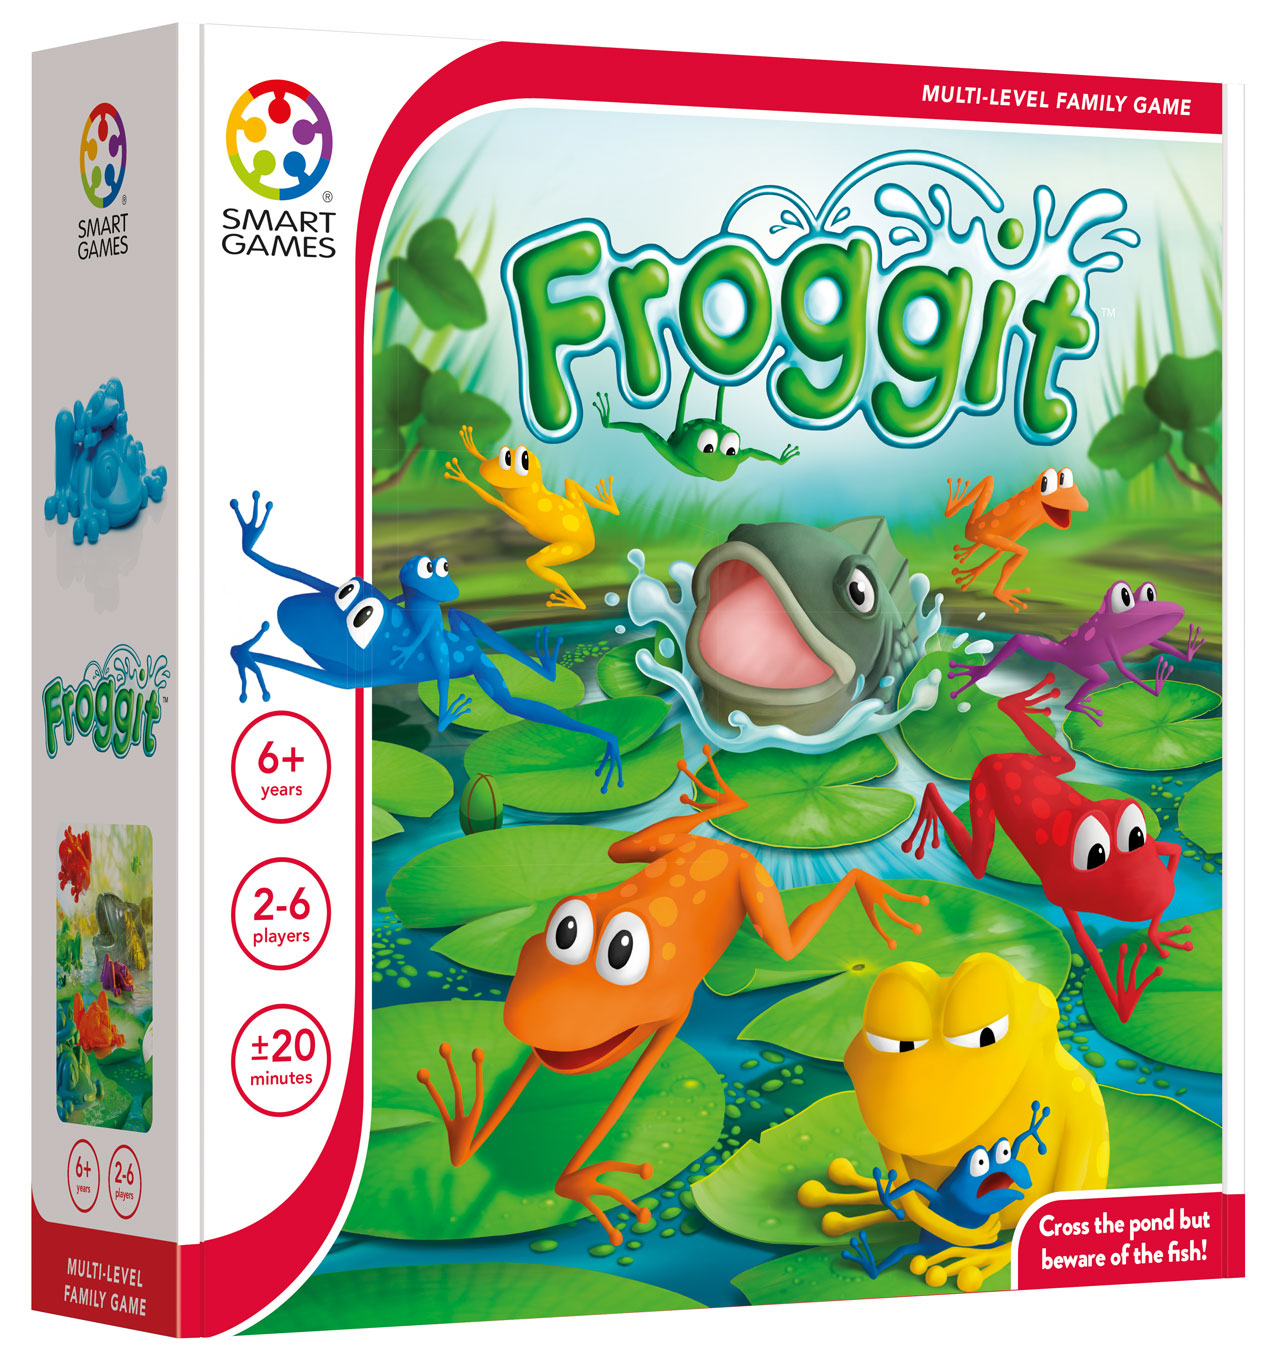 Smart Games - Froggit Game